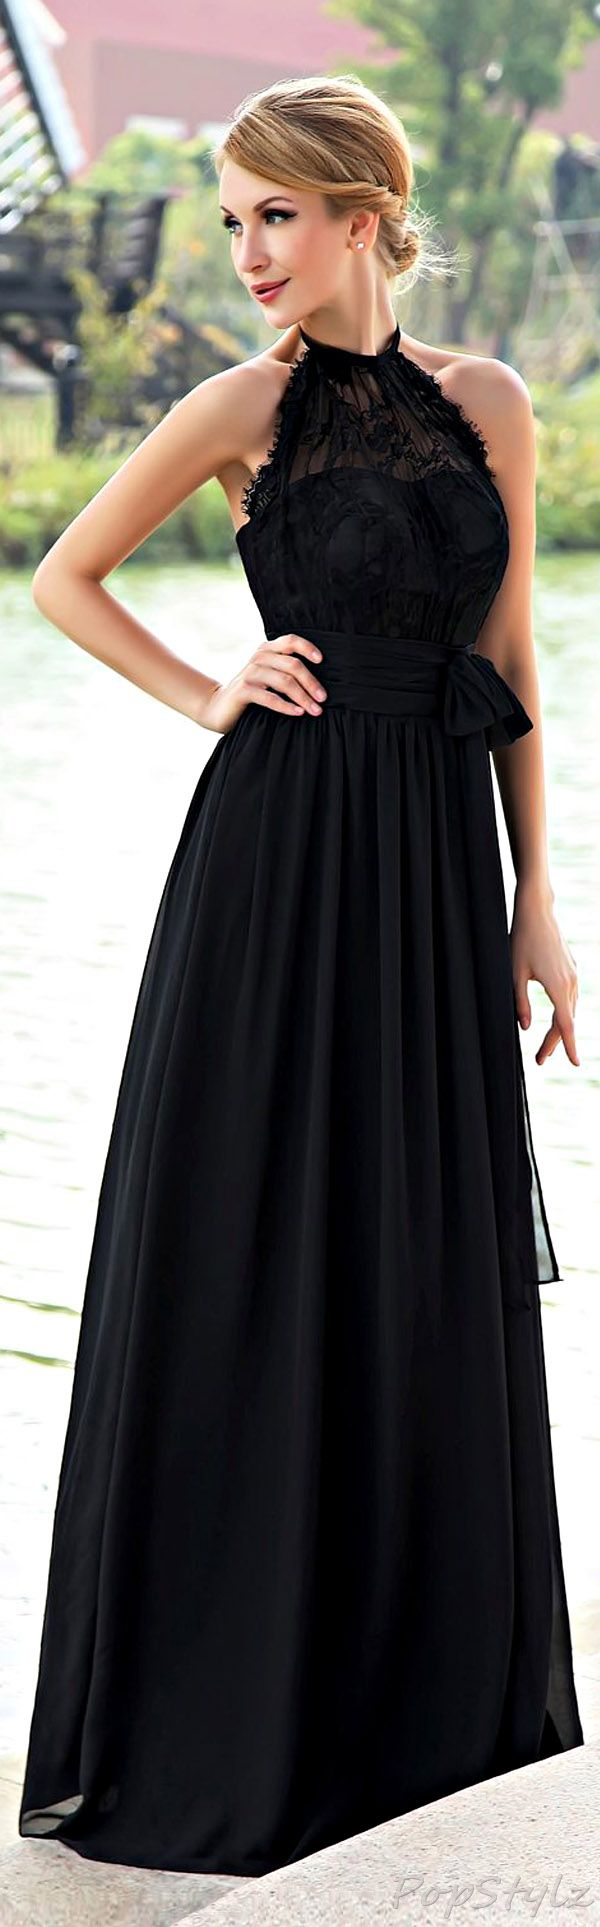 Pin by Betina Ensslin on Dresses!! | Pinterest | Chiffon Gown, Chiffon and Gowns